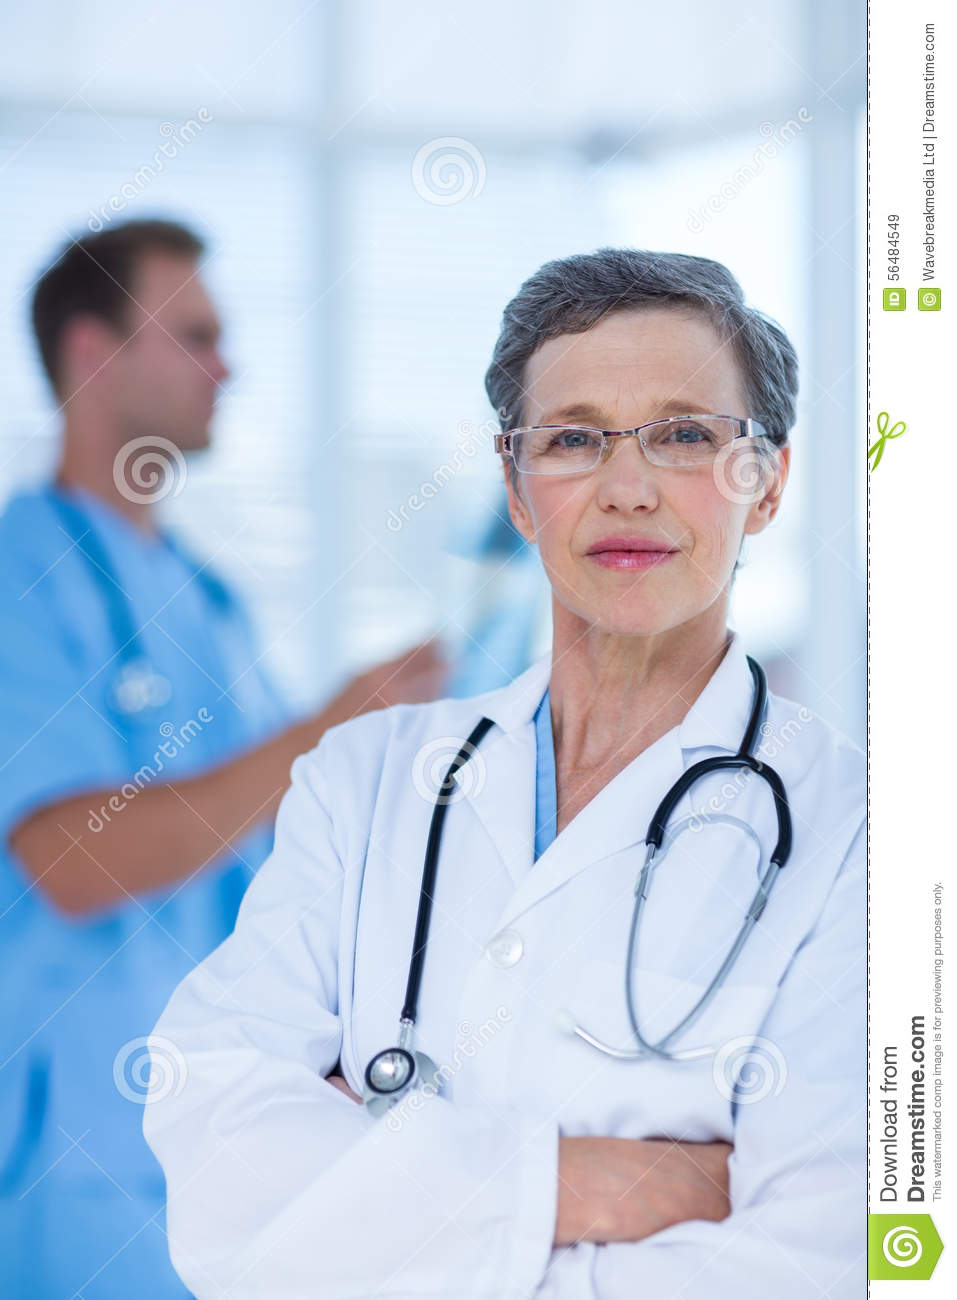 Docteur attentif regardant l appareil-photo